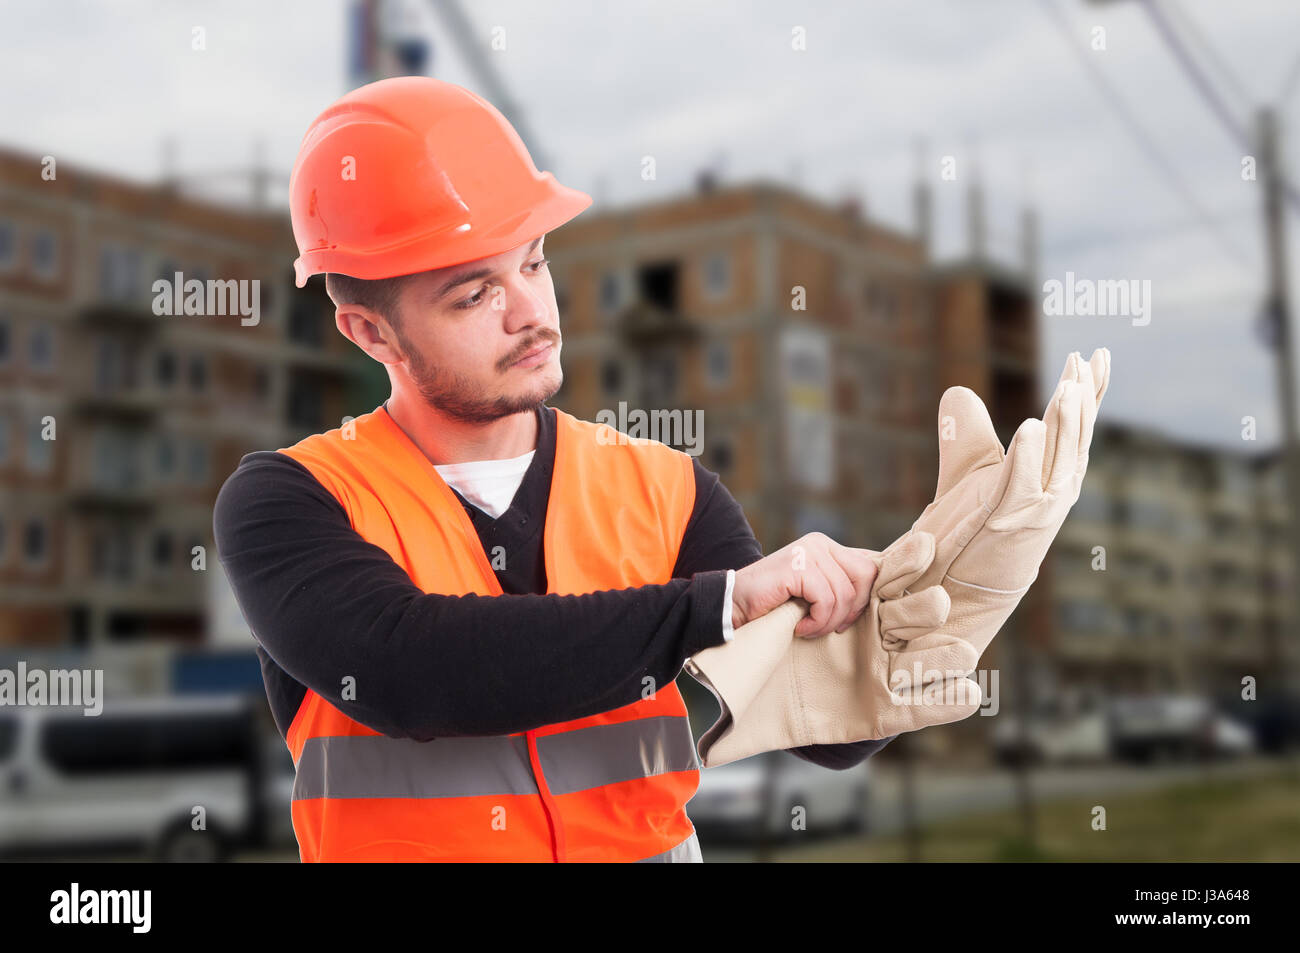 Builder putting protection gloves on hands and getting dressed for work - Stock Image